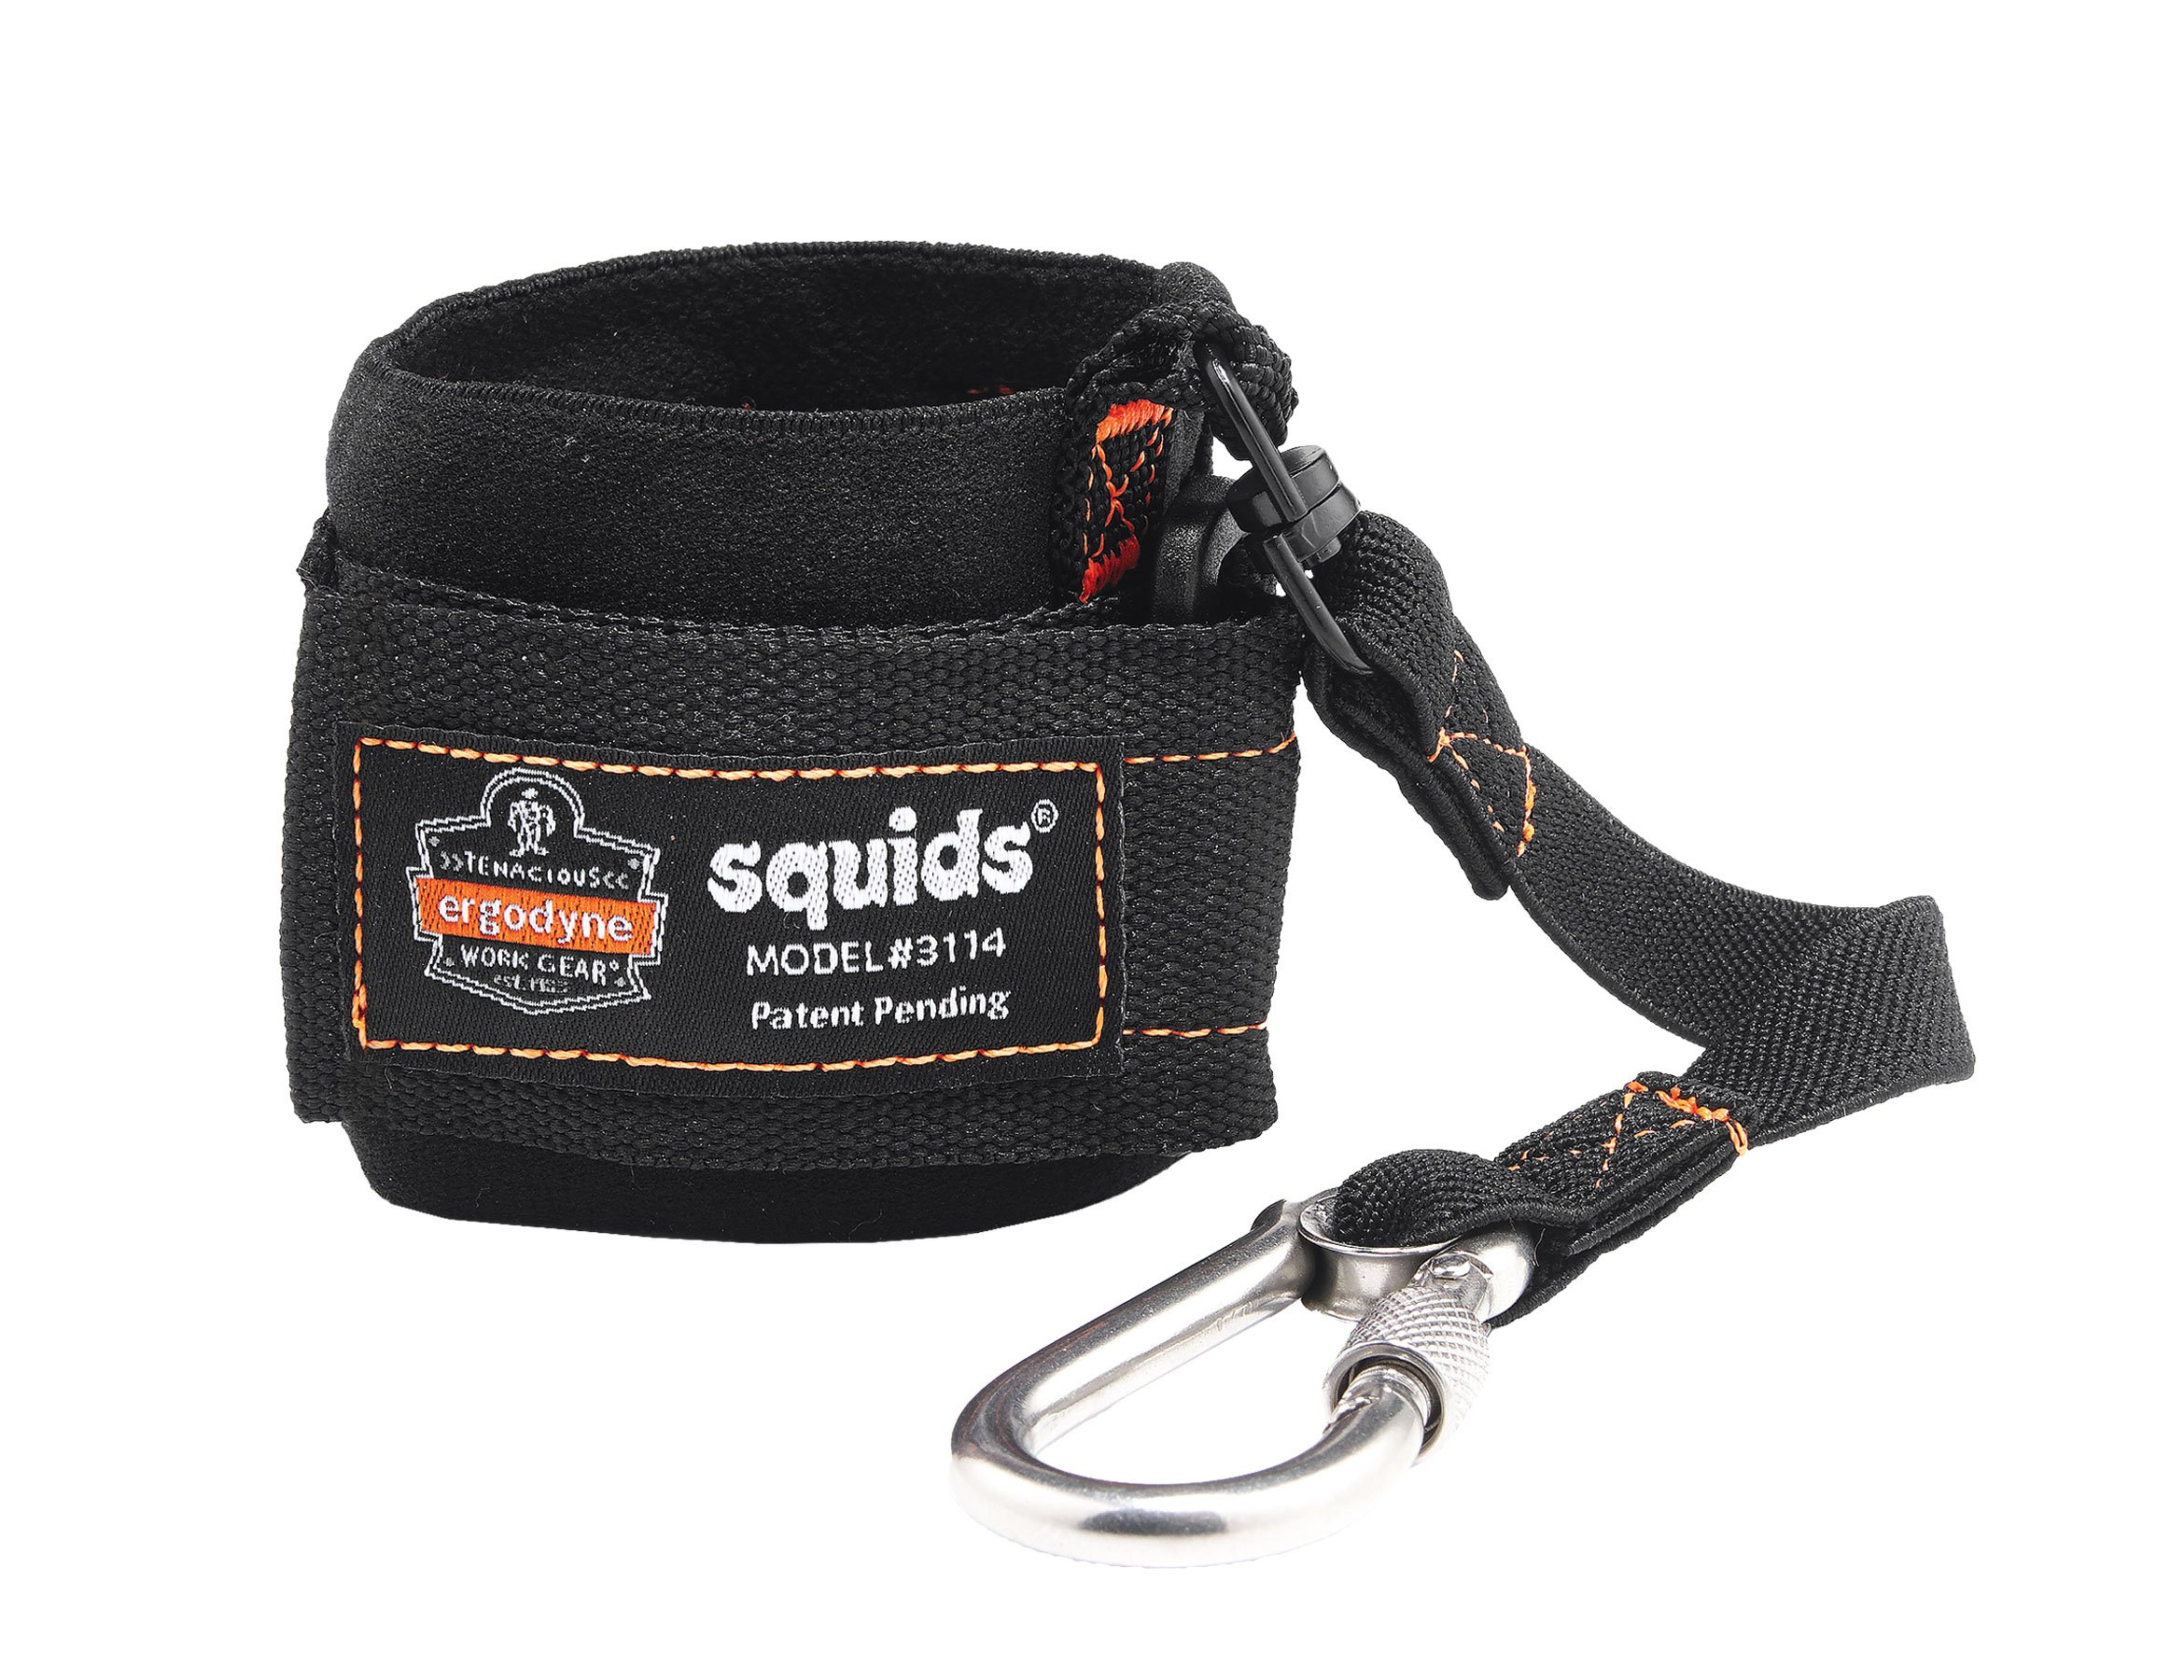 Ergodyne Squids 3114 Pull-On Wrist Tool Lanyard with Stainless Steel Carabiner Connection, 3 Pounds